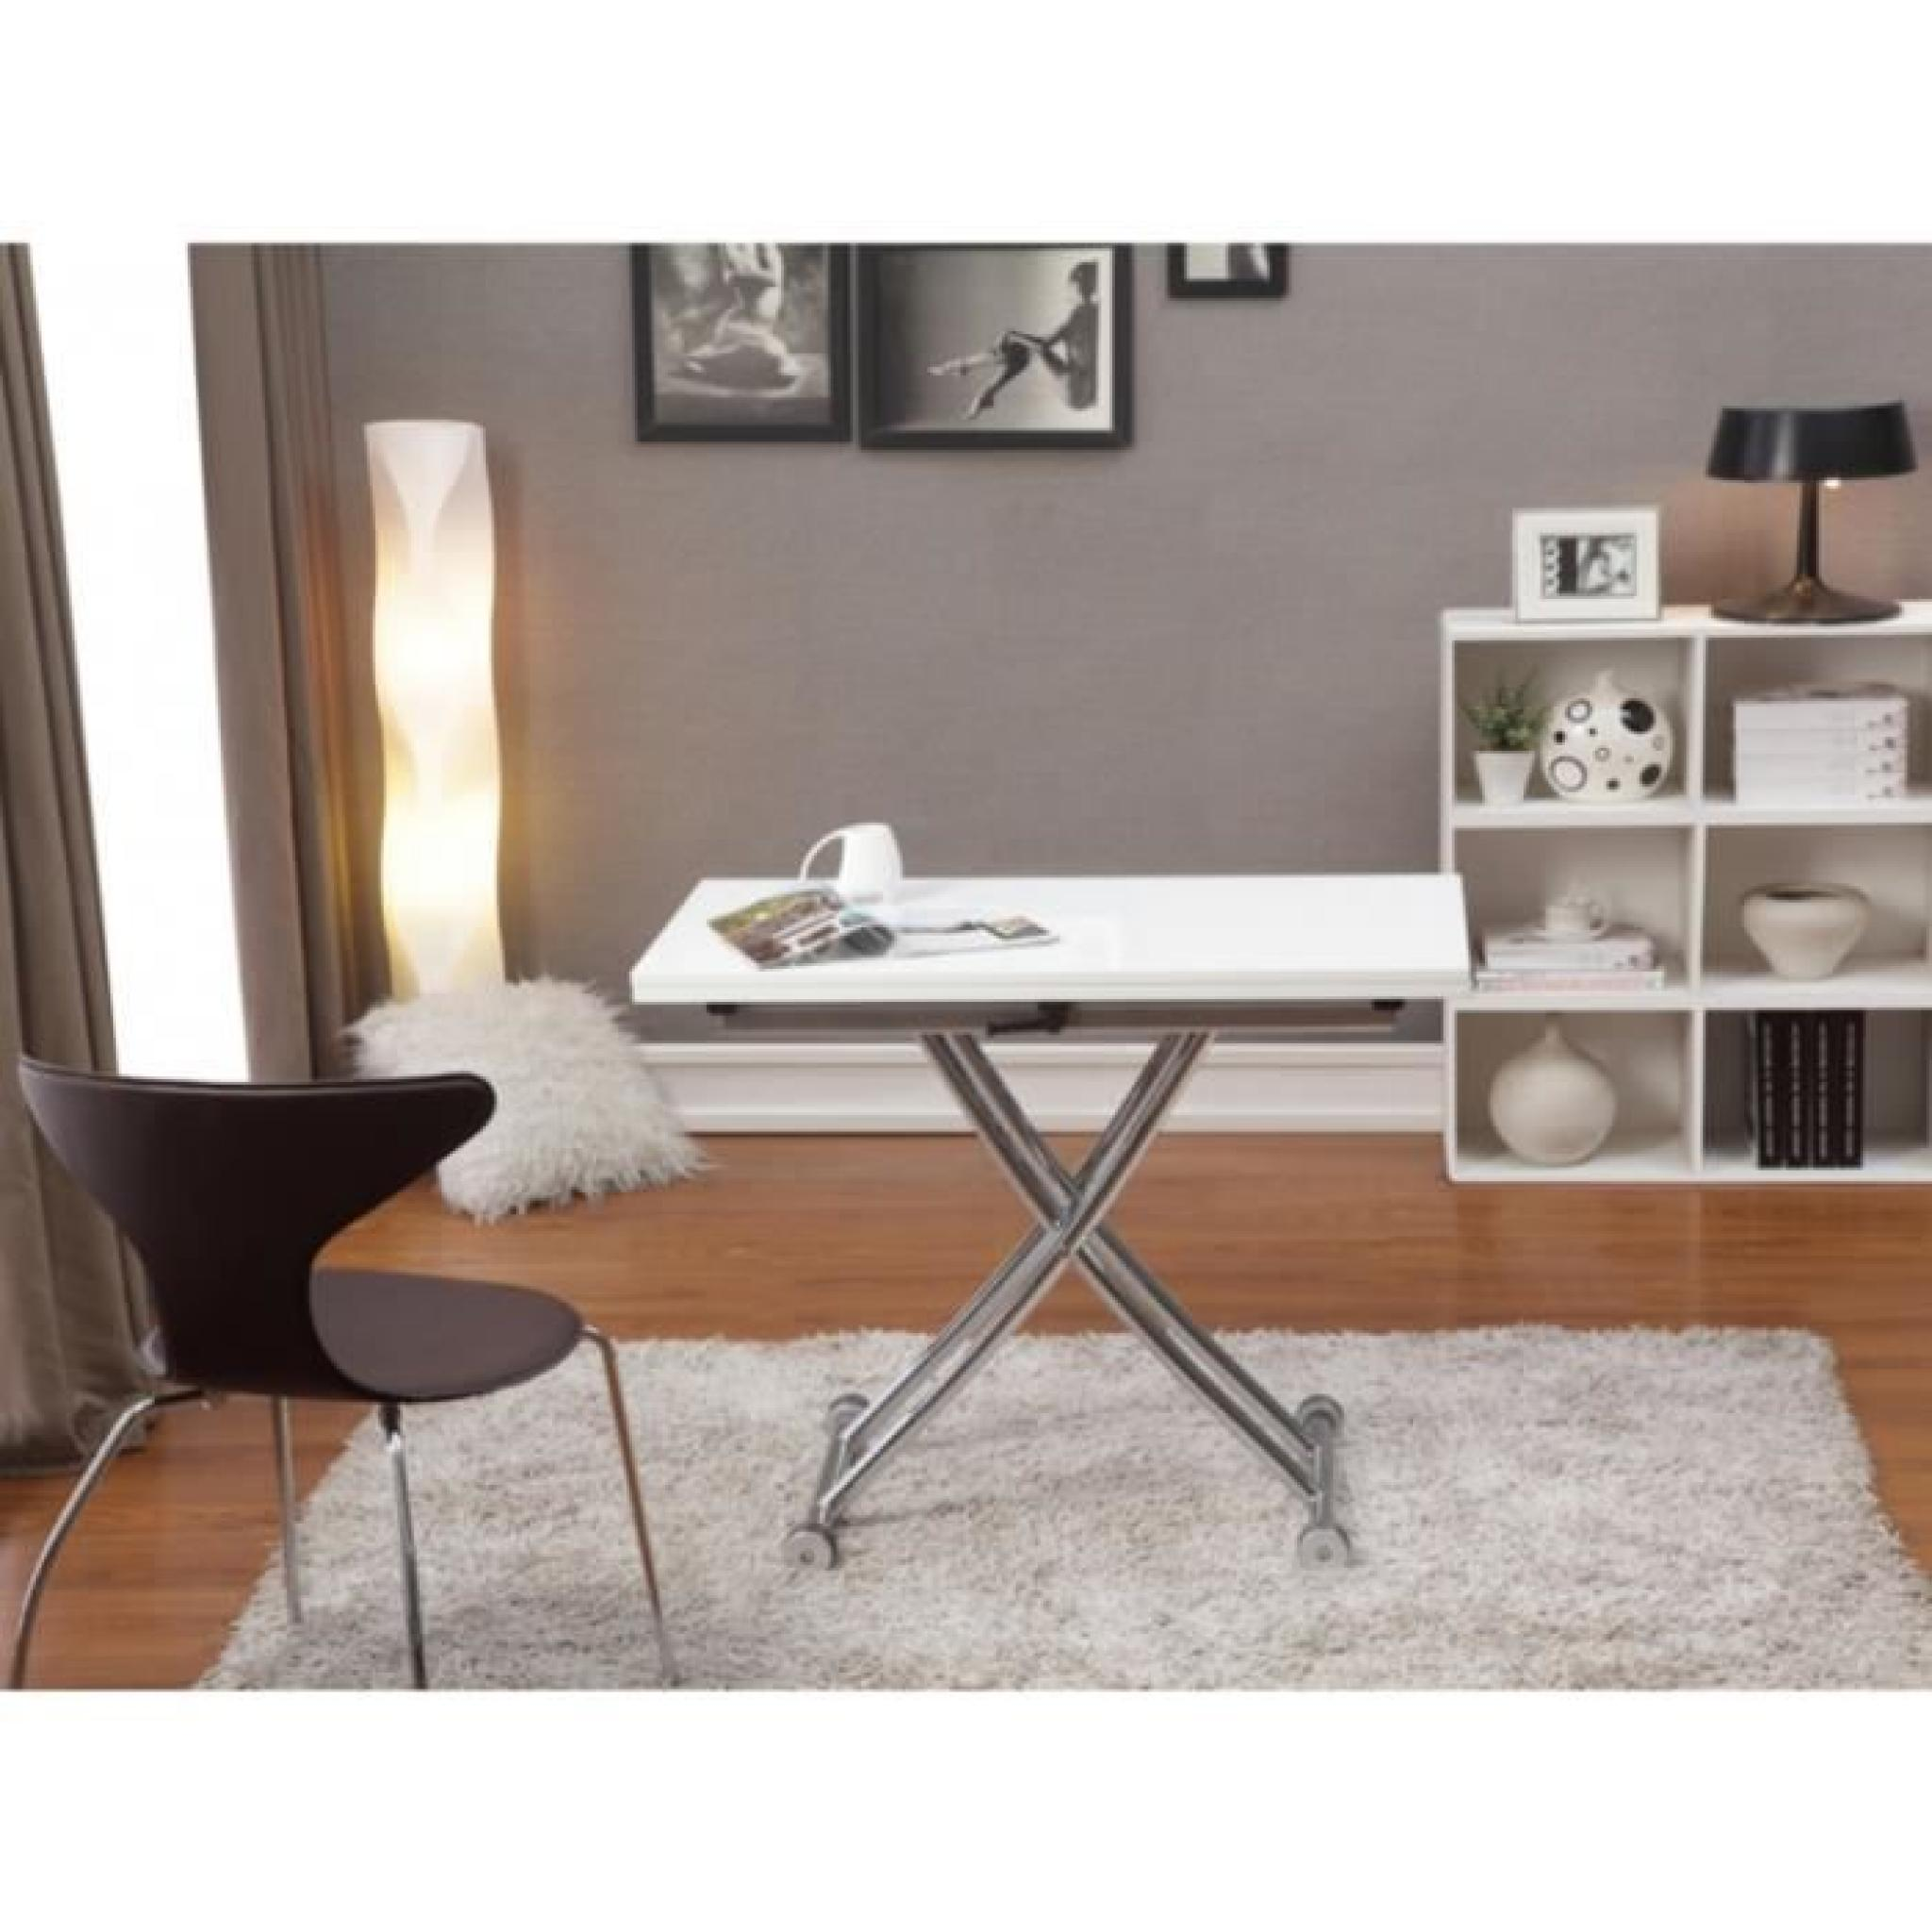 table extensible up u down clever couverts c pas cher with table up and down pas cher. Black Bedroom Furniture Sets. Home Design Ideas